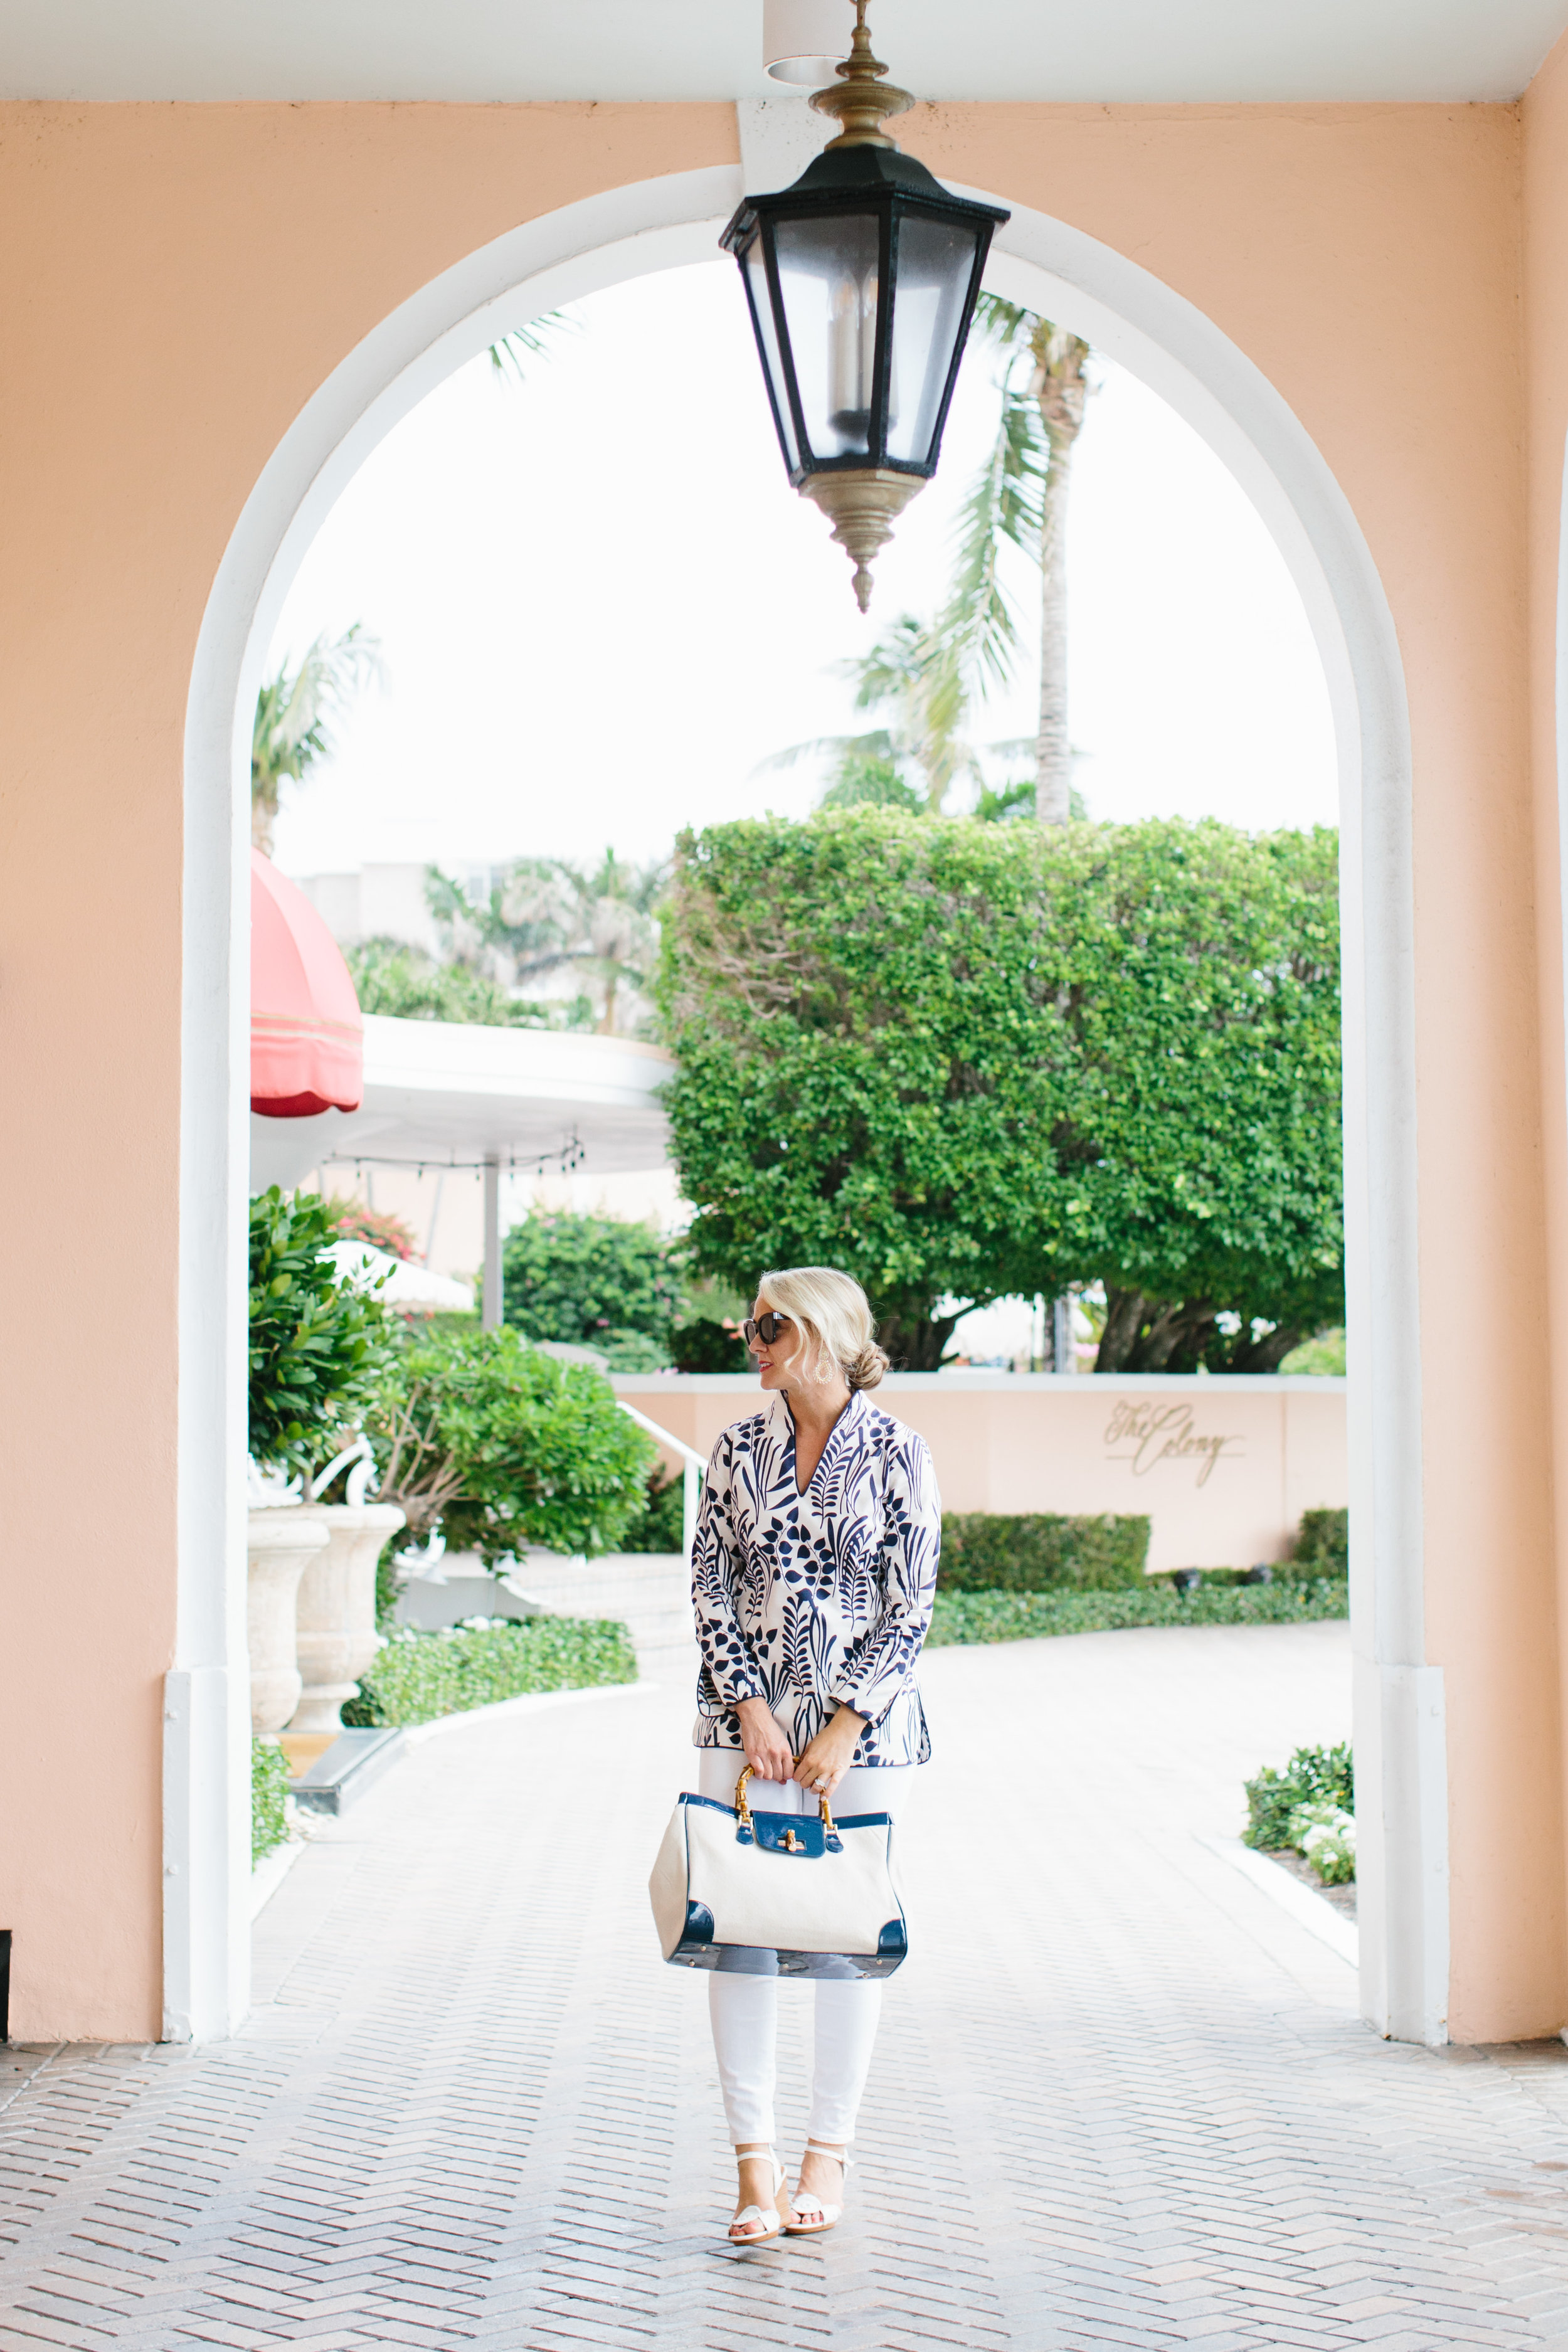 Palm Beach Travel Guide from Abby Capalbo | Photography: Erin McGinn